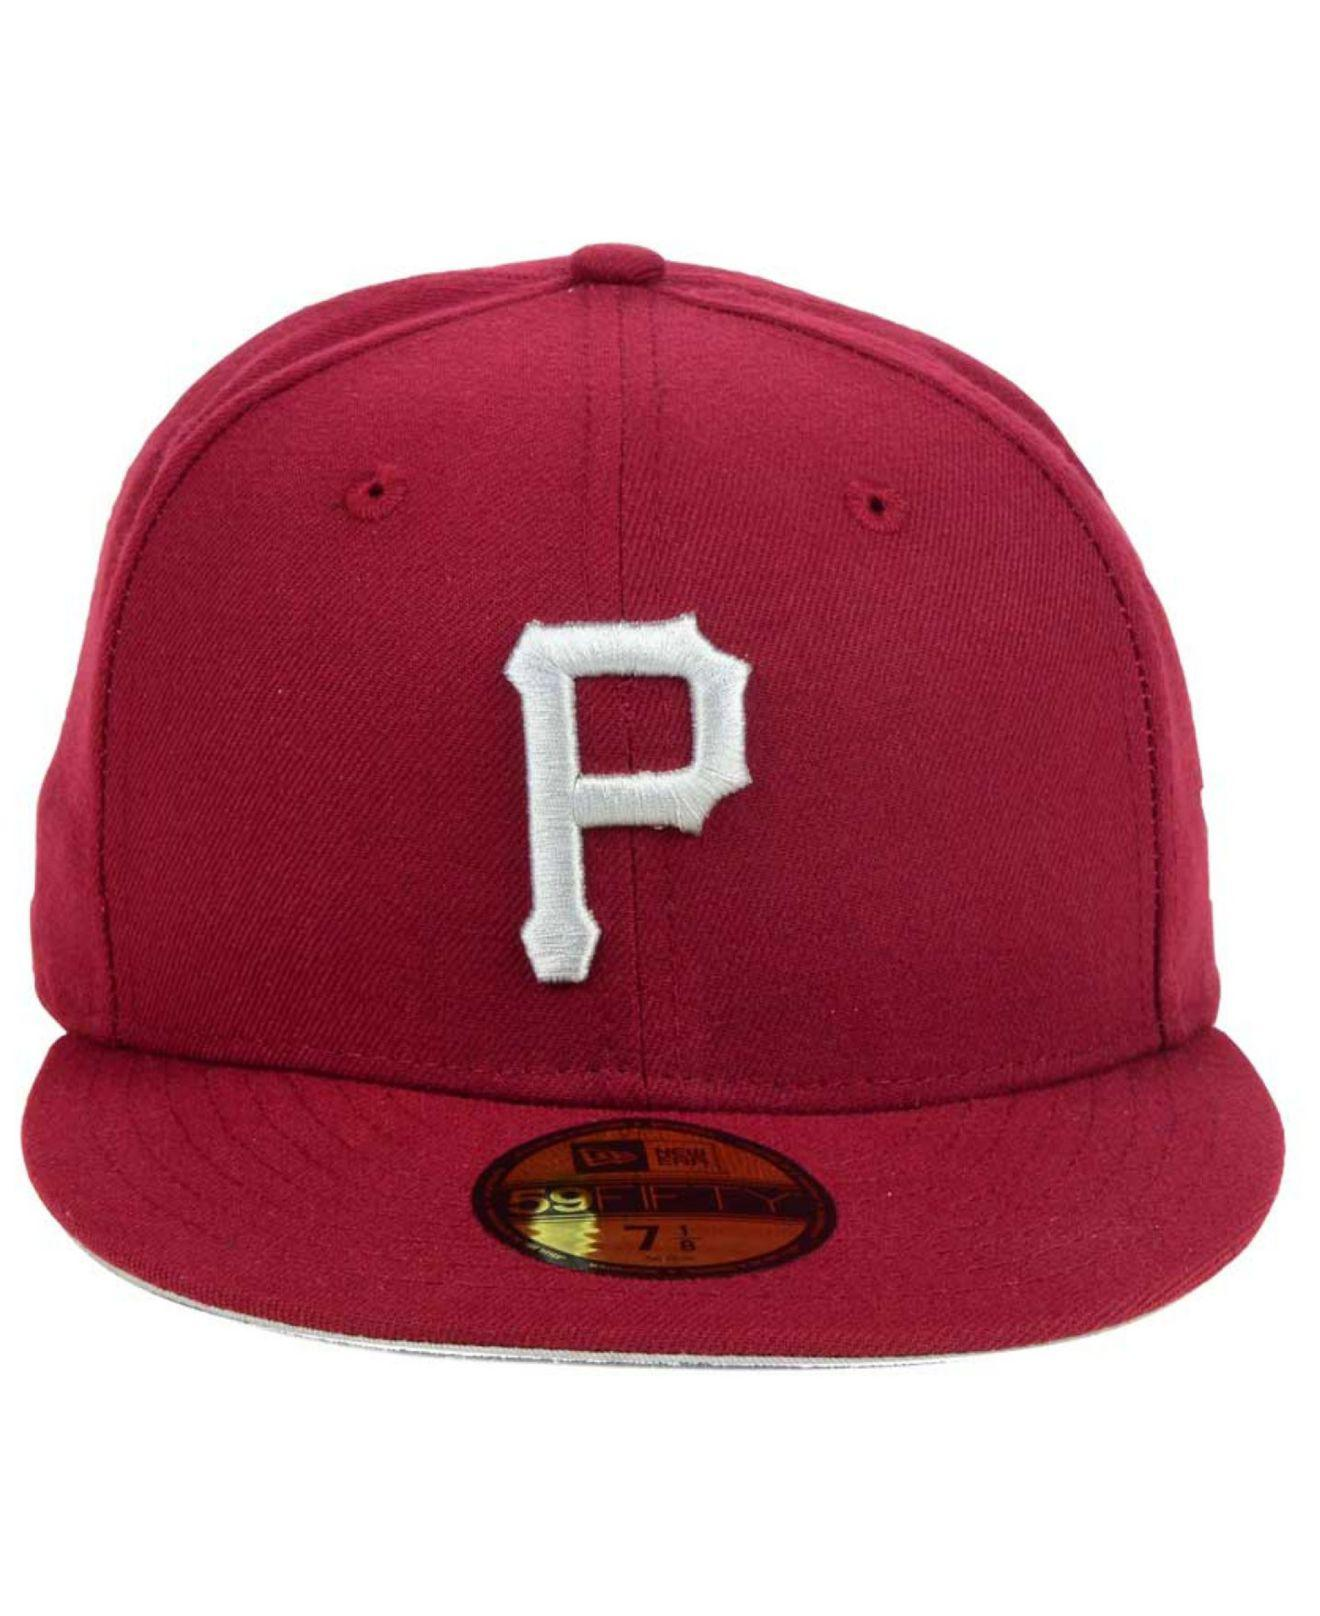 6438a236d66 Lyst - Ktz Pittsburgh Pirates Cardinal Gray 59fifty Cap in Red for Men